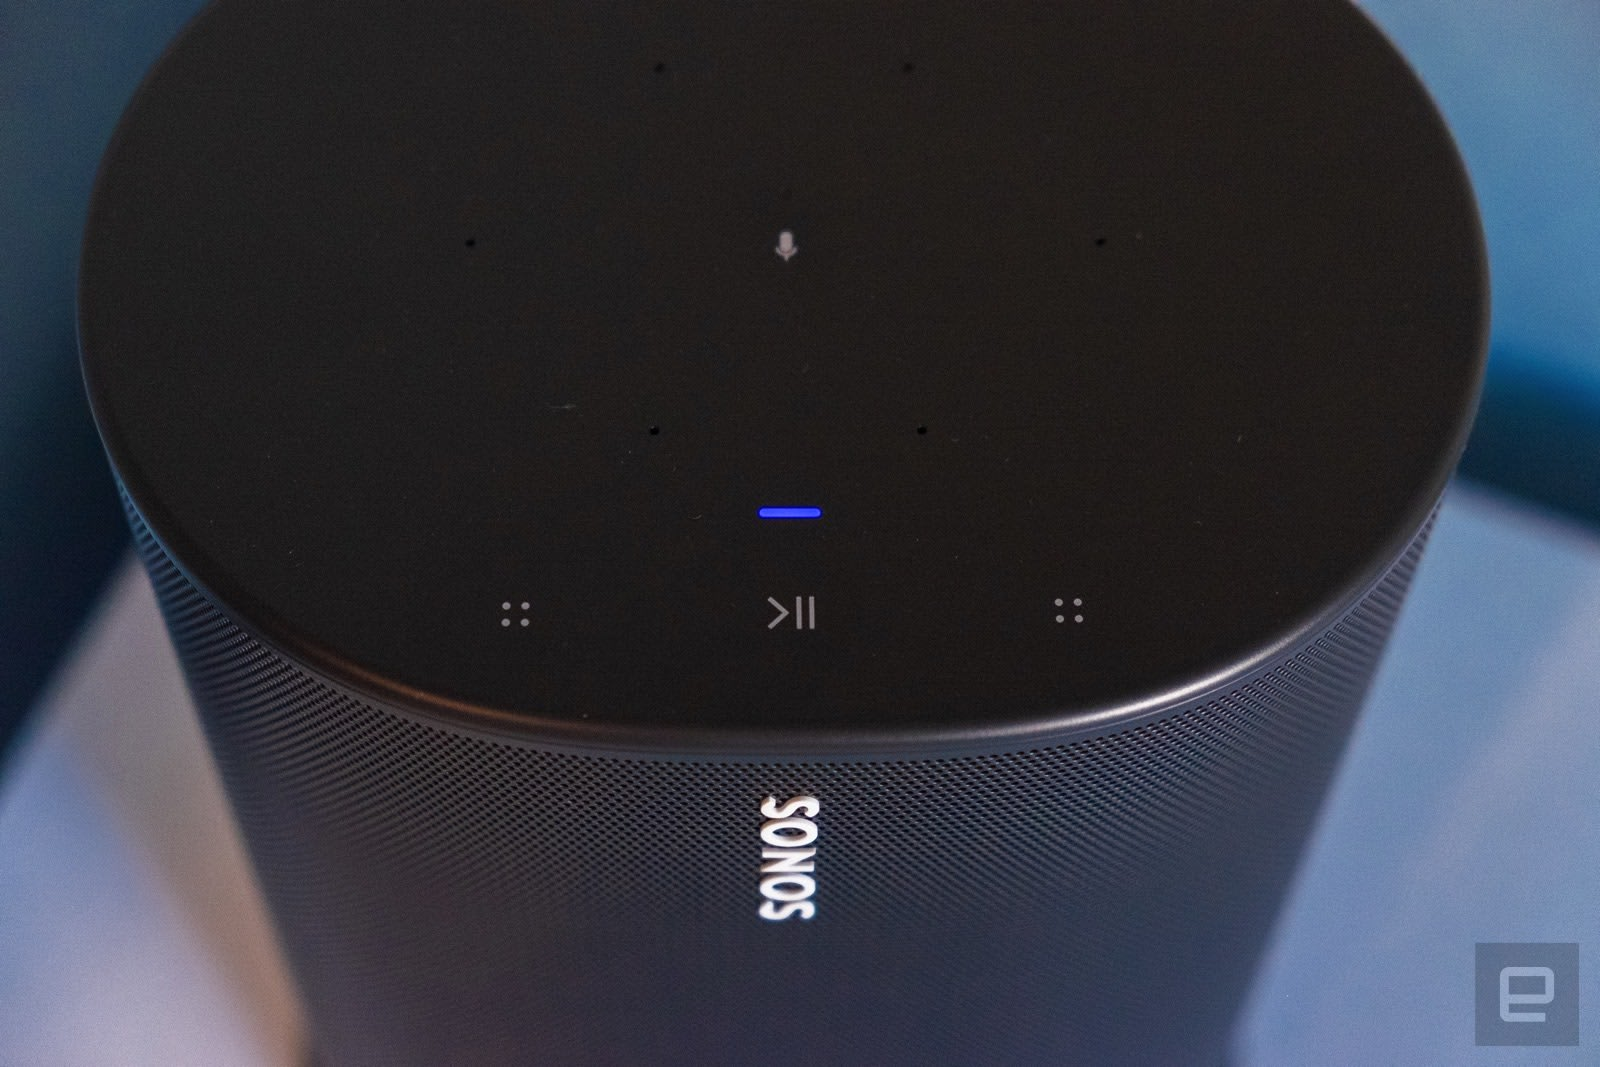 Sonos buys an AI startup to improve voice control for its speakers